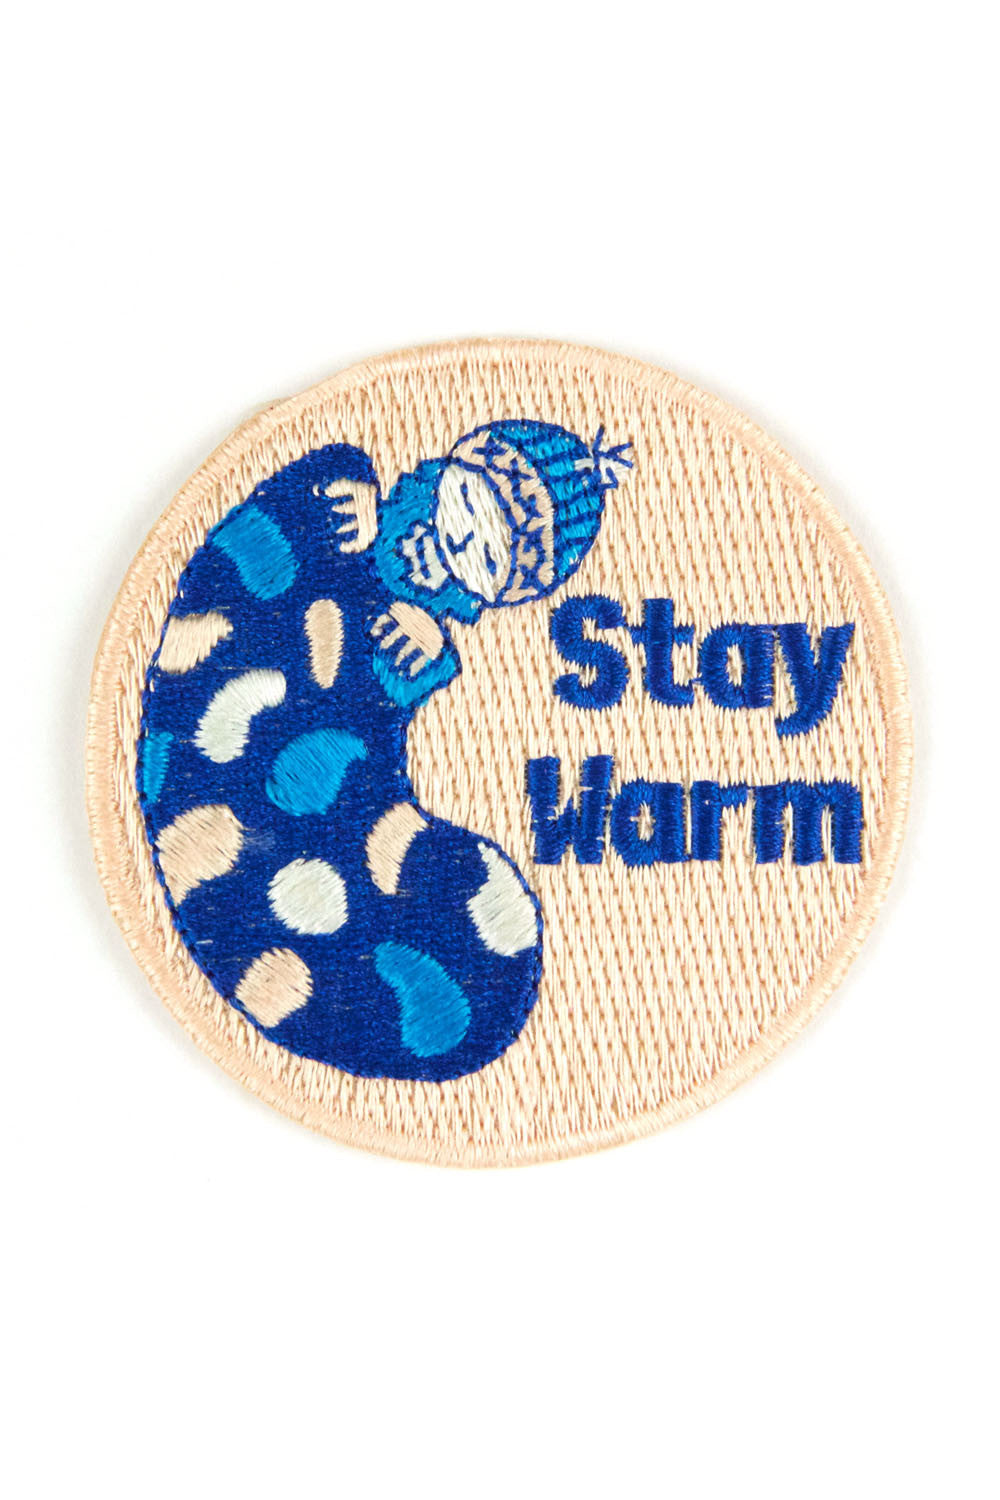 Stay Warm: Mokuyobi x Mowgli Iron On Patch